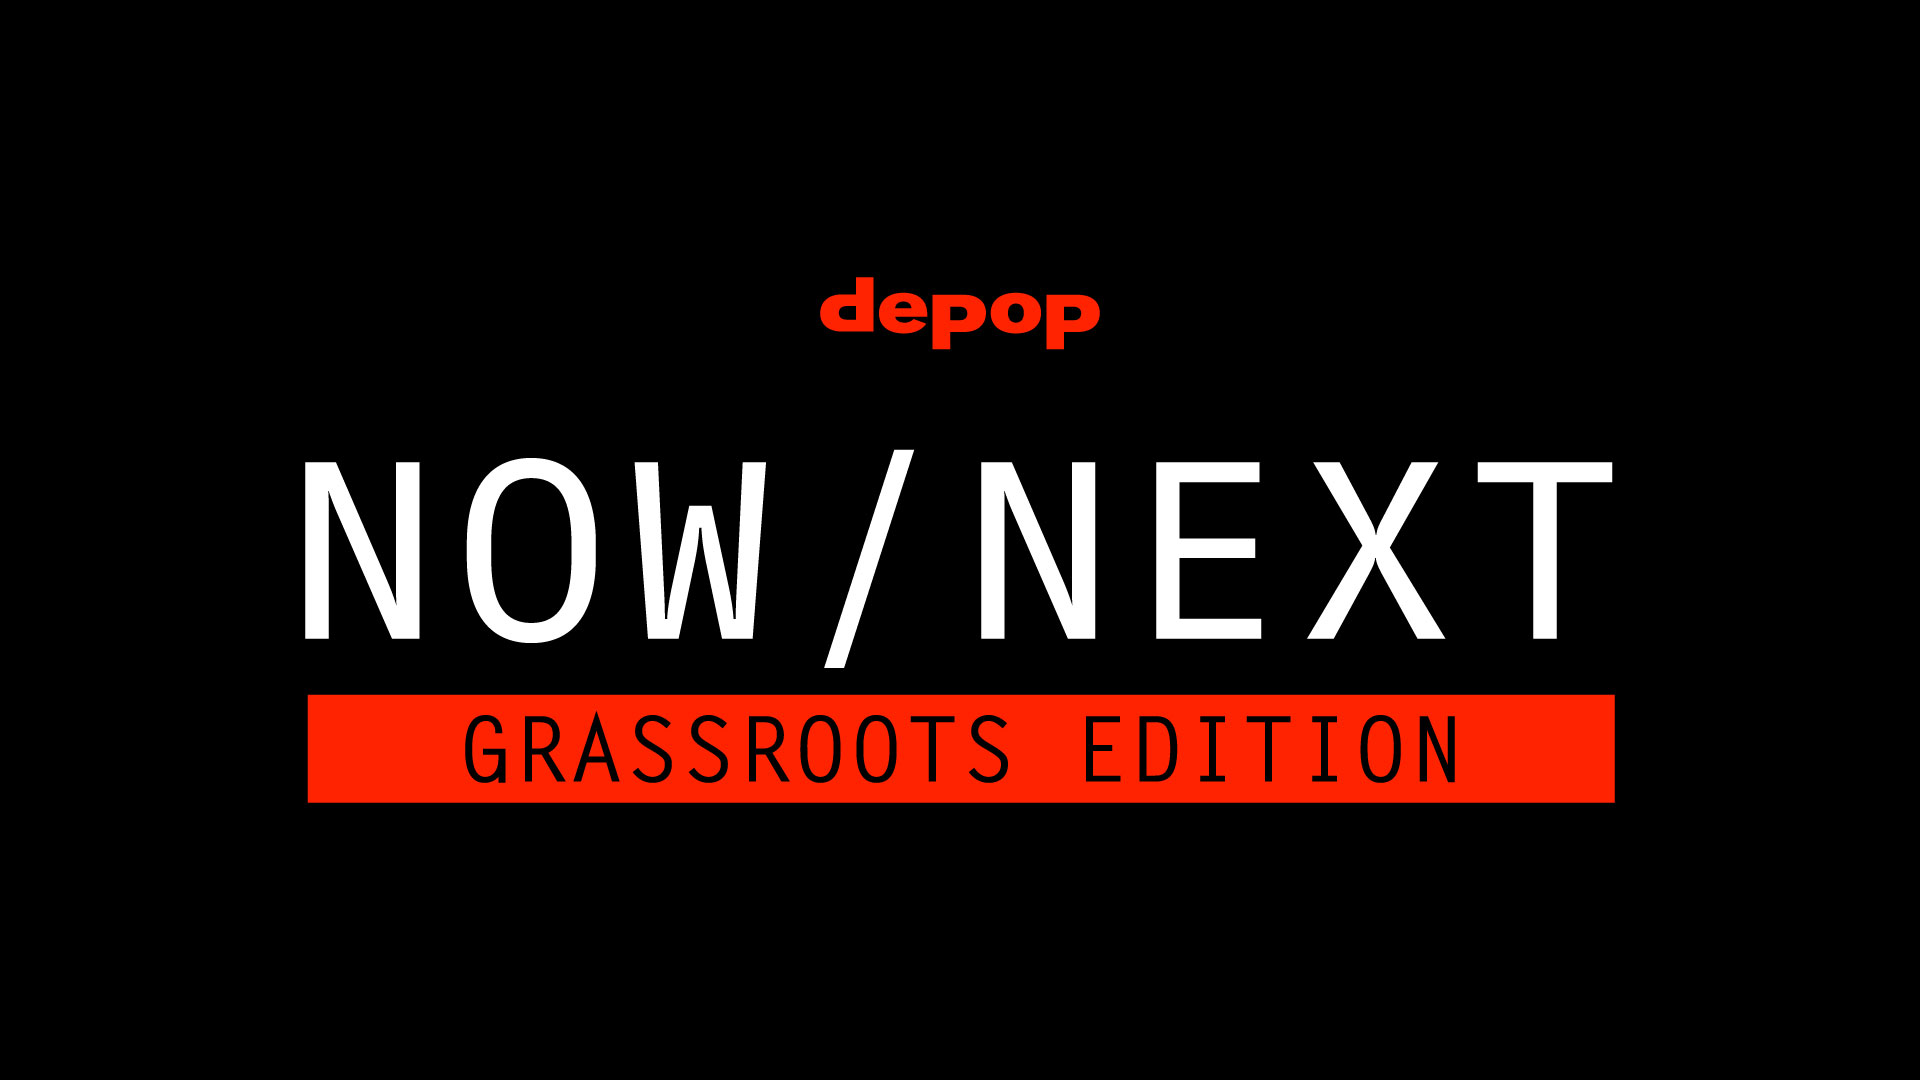 NowNext_GrassrootsEdition_Lockup_16x9.jpg